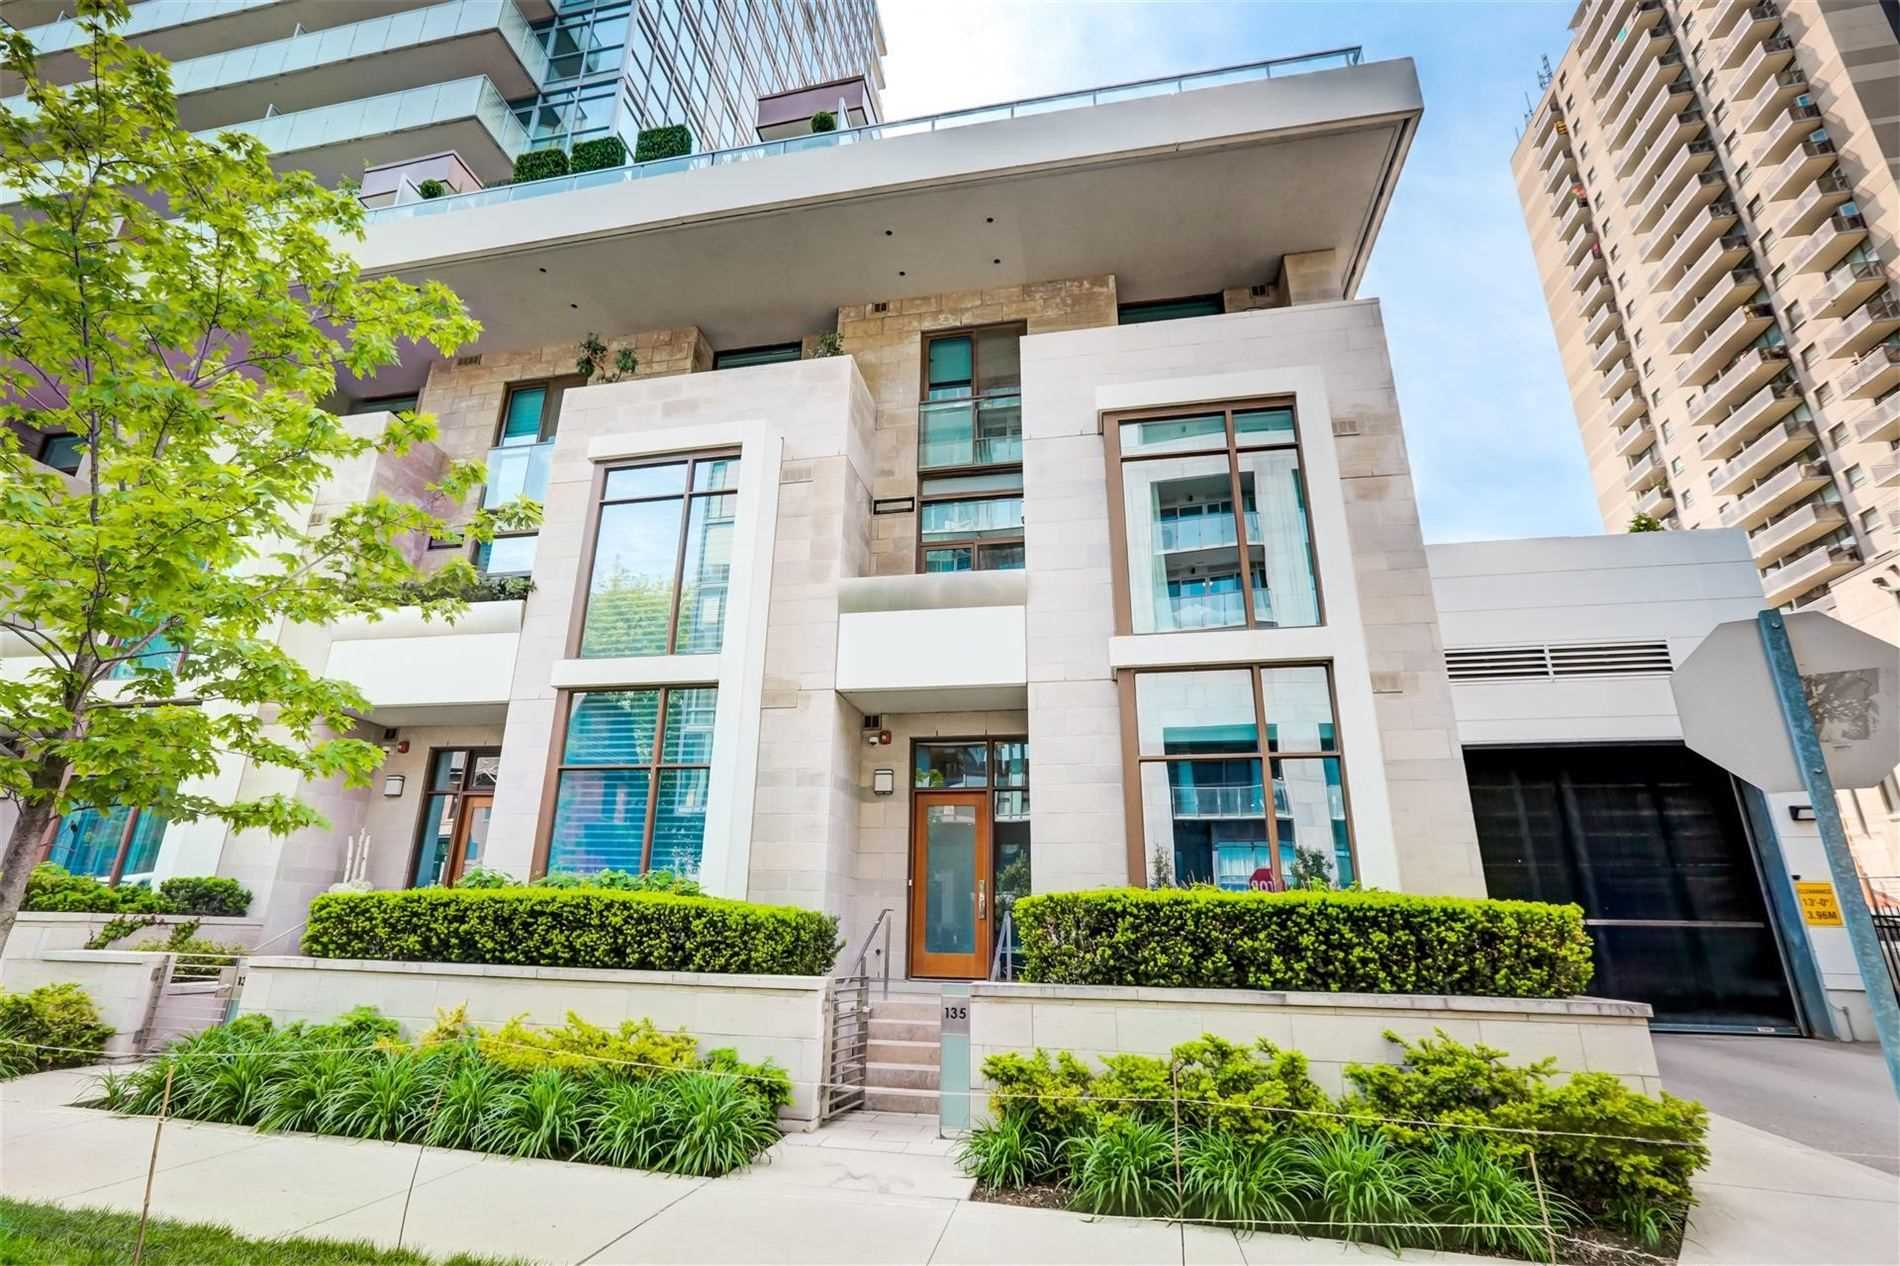 Condo Townhouse For Sale In Toronto , 3 Bedrooms Bedrooms, ,4 BathroomsBathrooms,Condo Townhouse,For Sale,Pears